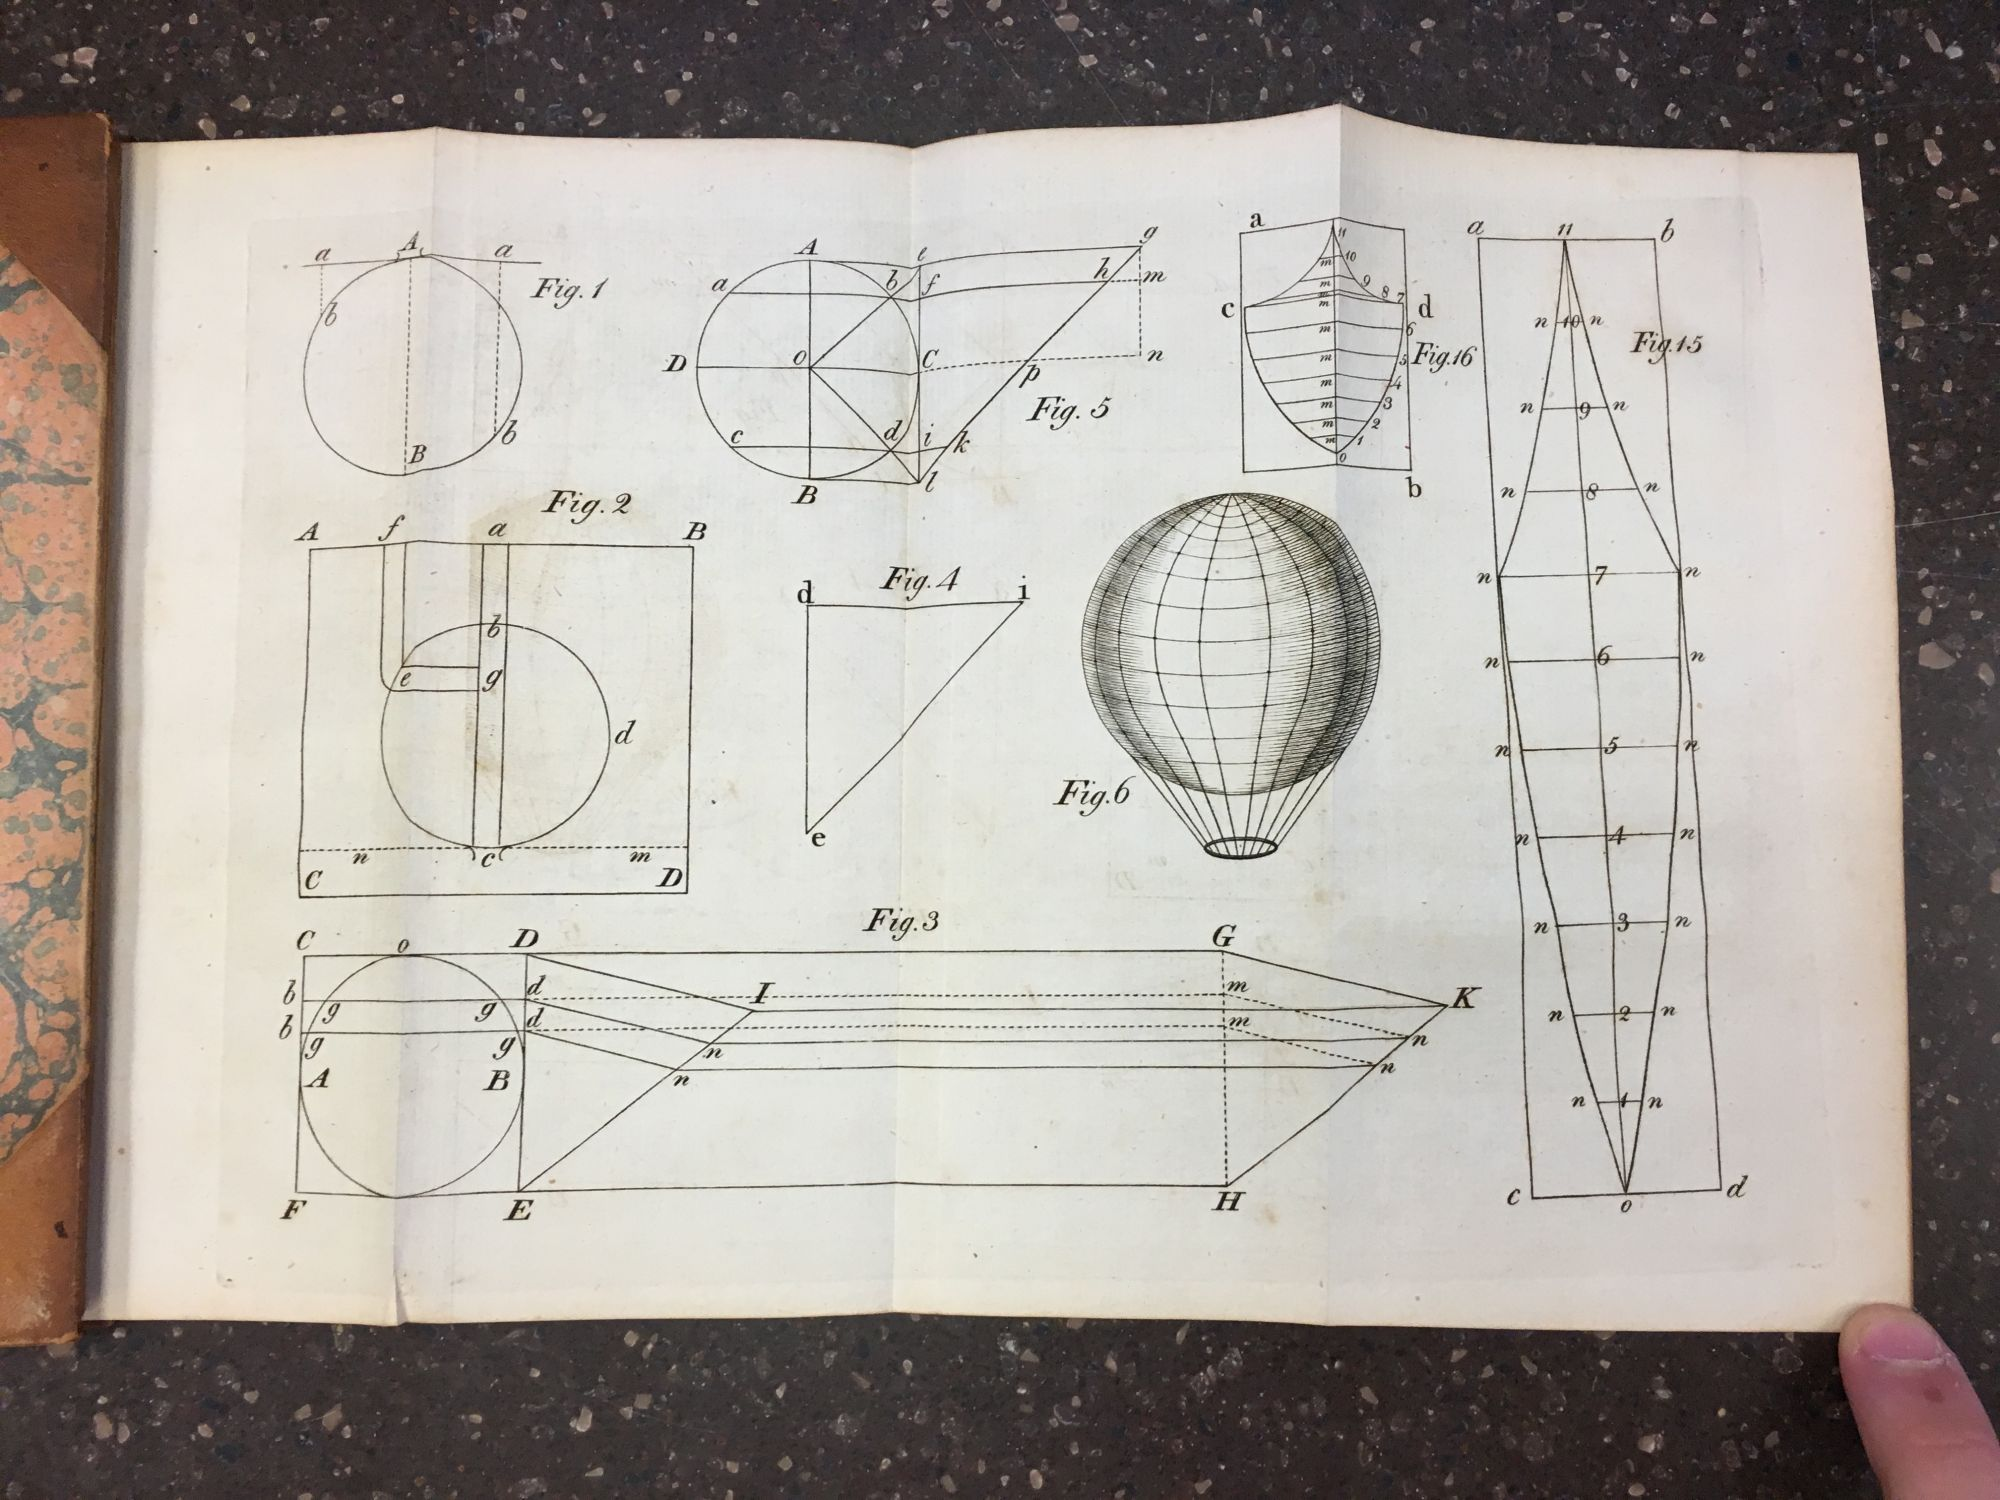 A TREATISE UPON AEROSTATIC MACHINES. CONTAINING RULES FOR CALCULATING THEIR POWERS OF ASCENSION. John Southern.